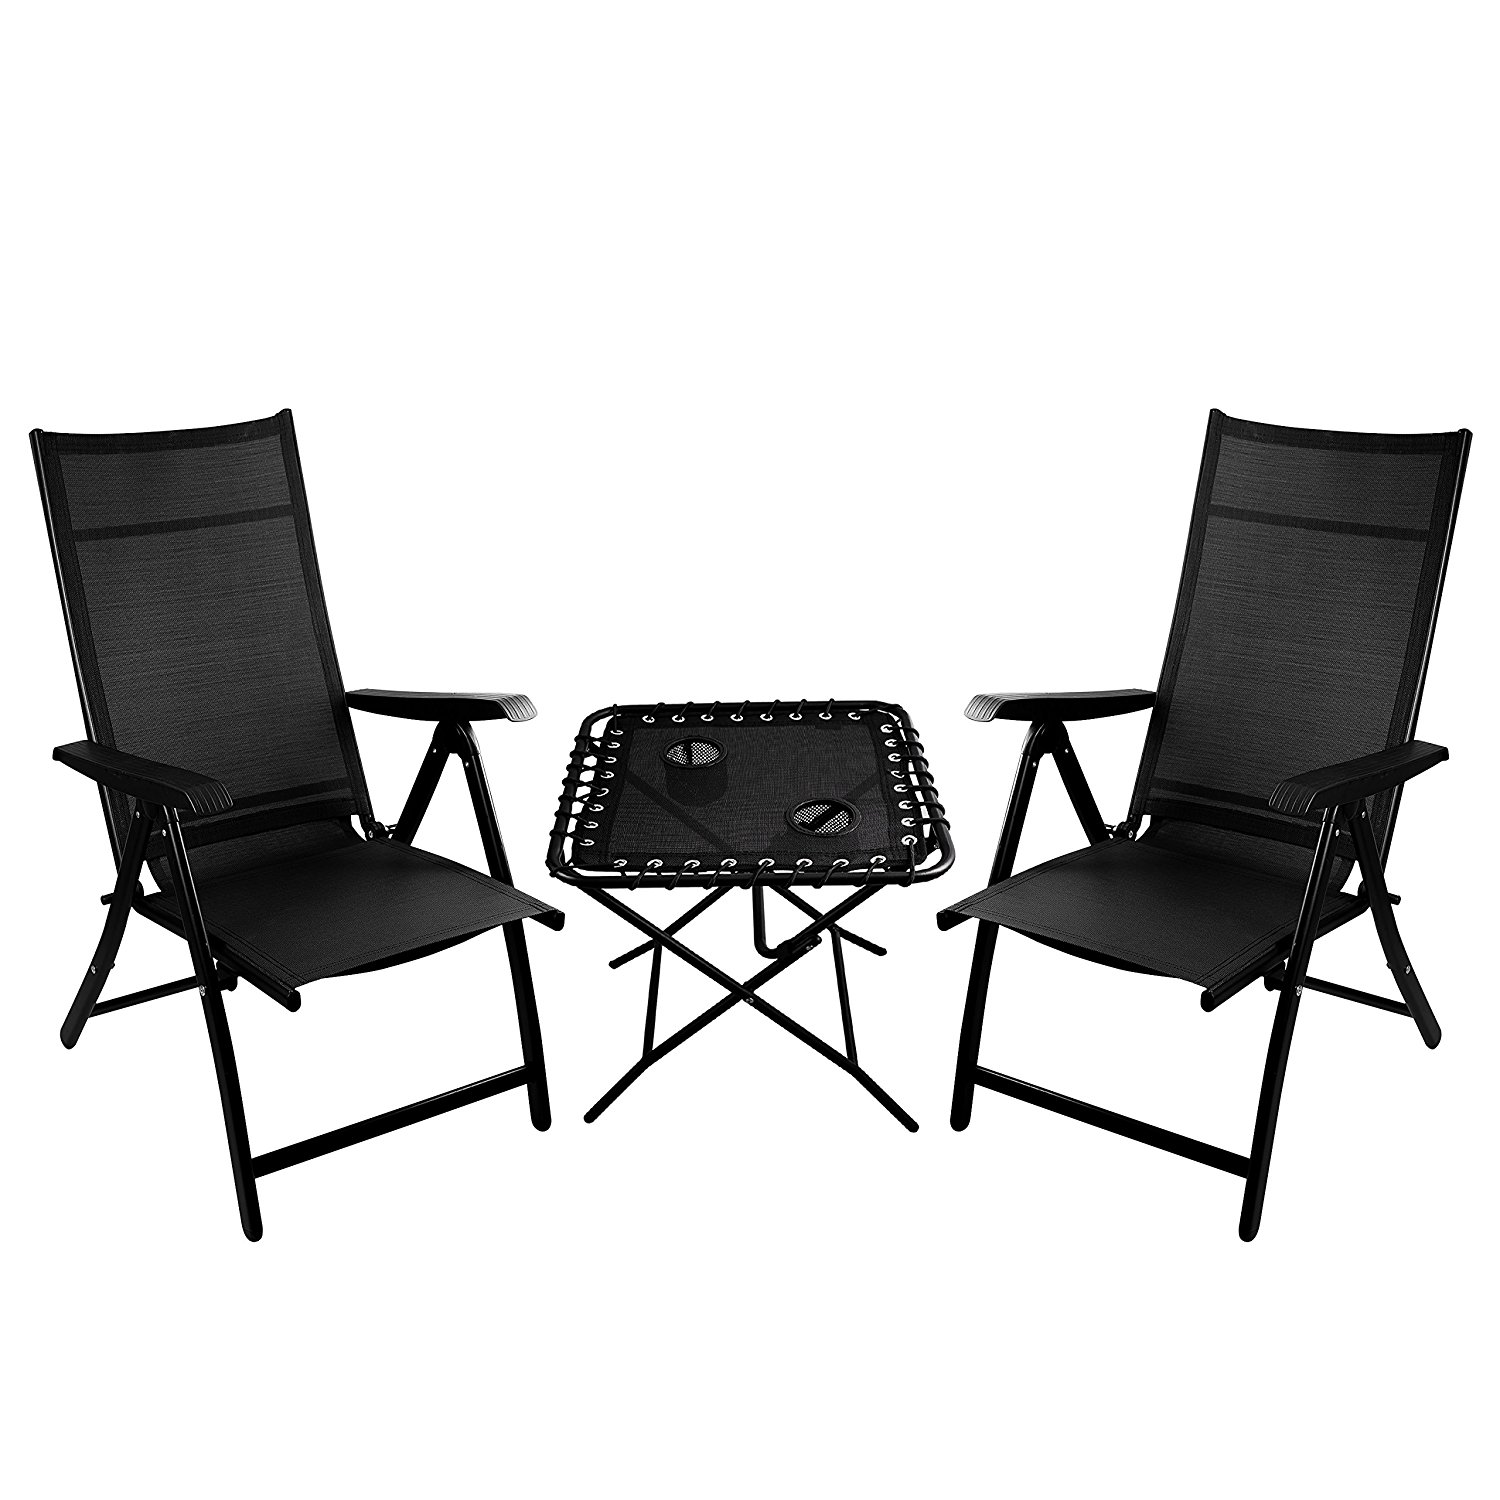 Delicieux 2 Heavy Duty Durable Adjustable Reclining Folding Chairs + 1 Folding Side  Table Outdoor Indoor Garden